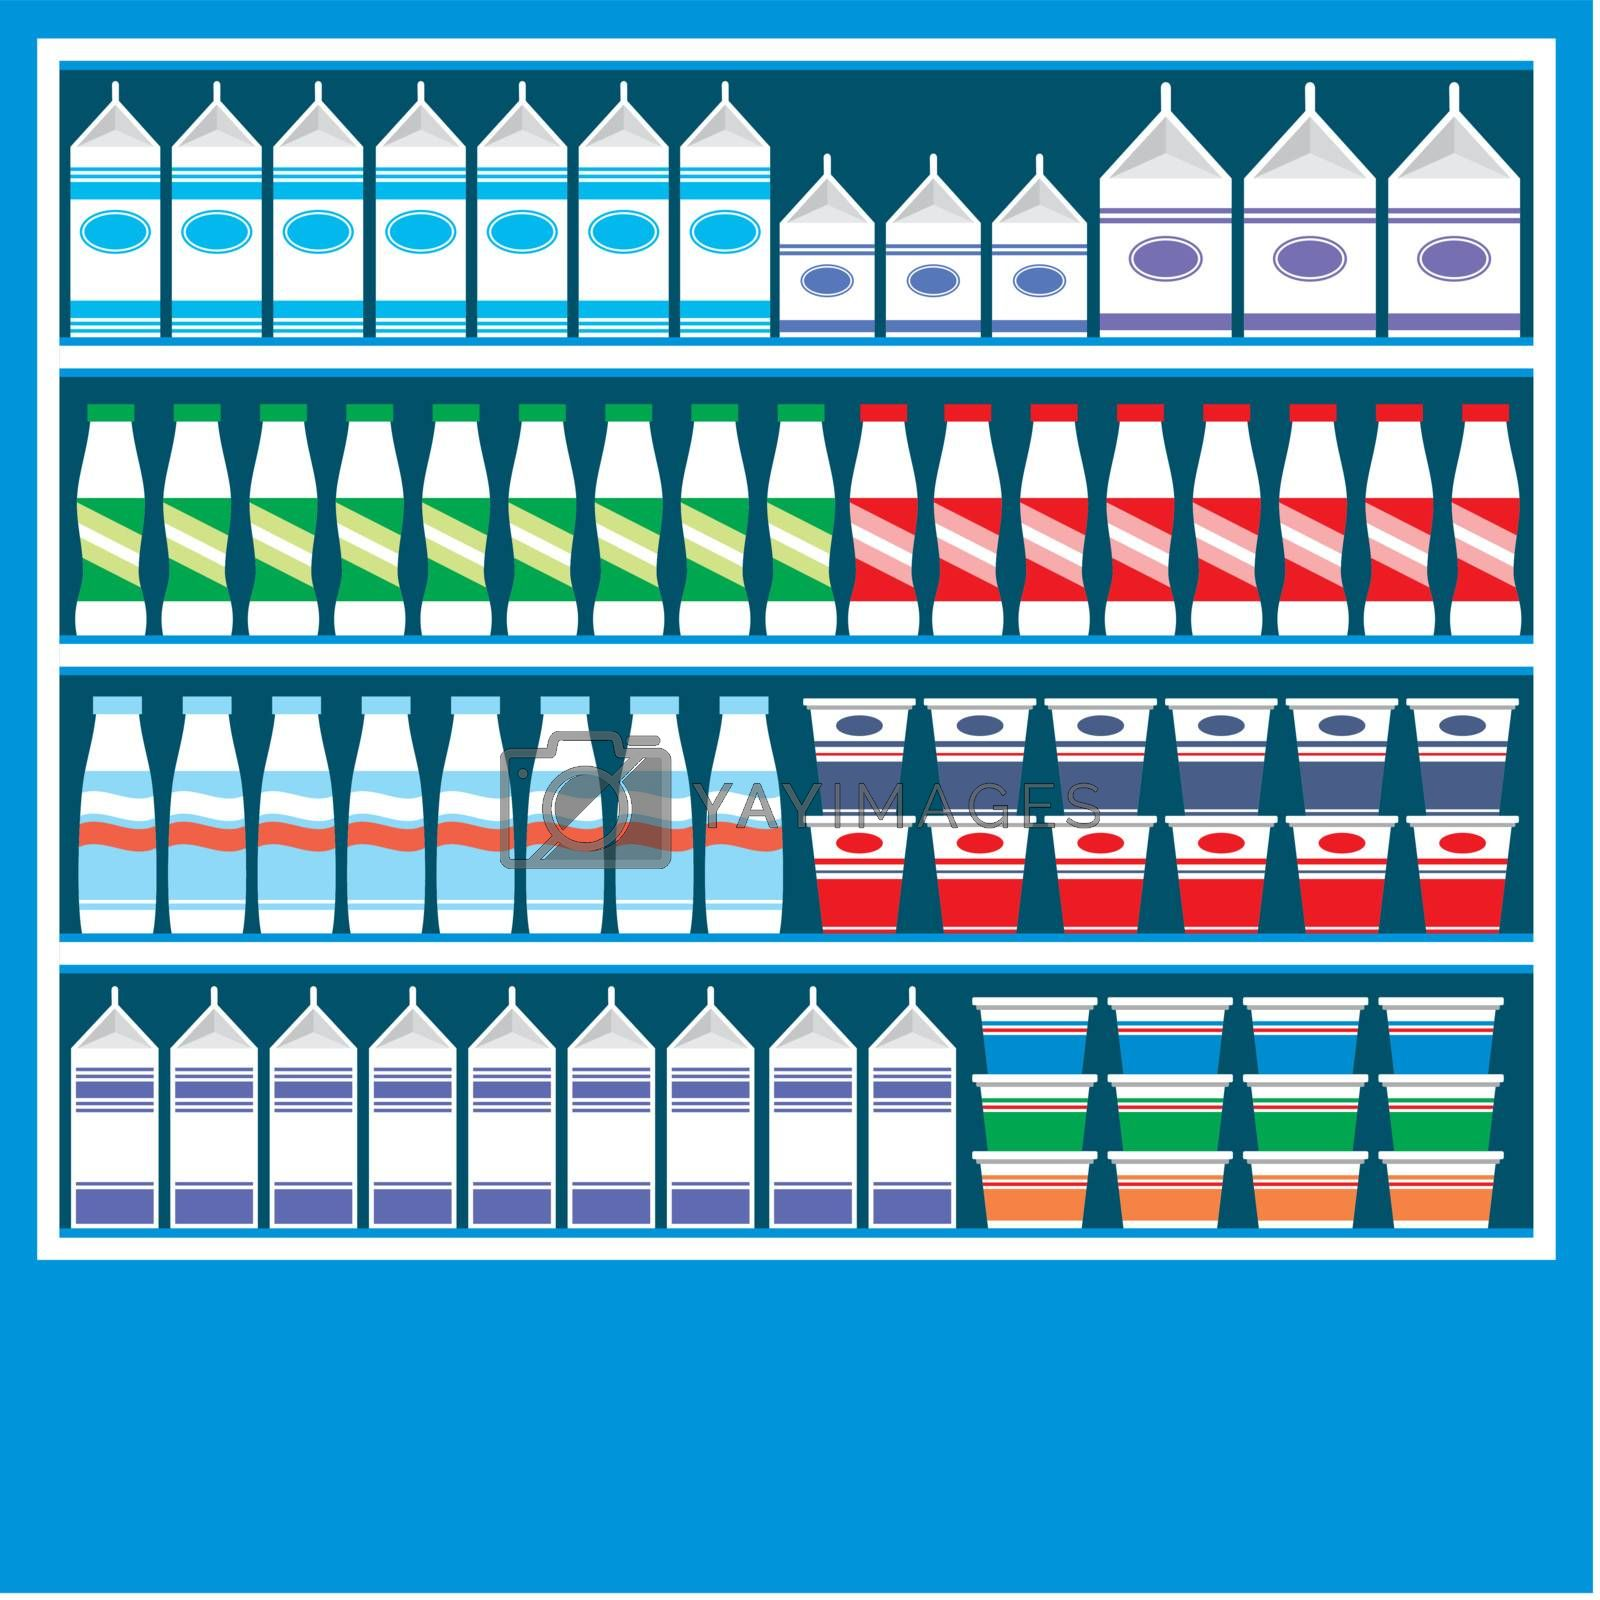 Supermarket shelves with dairy products on a blue background.